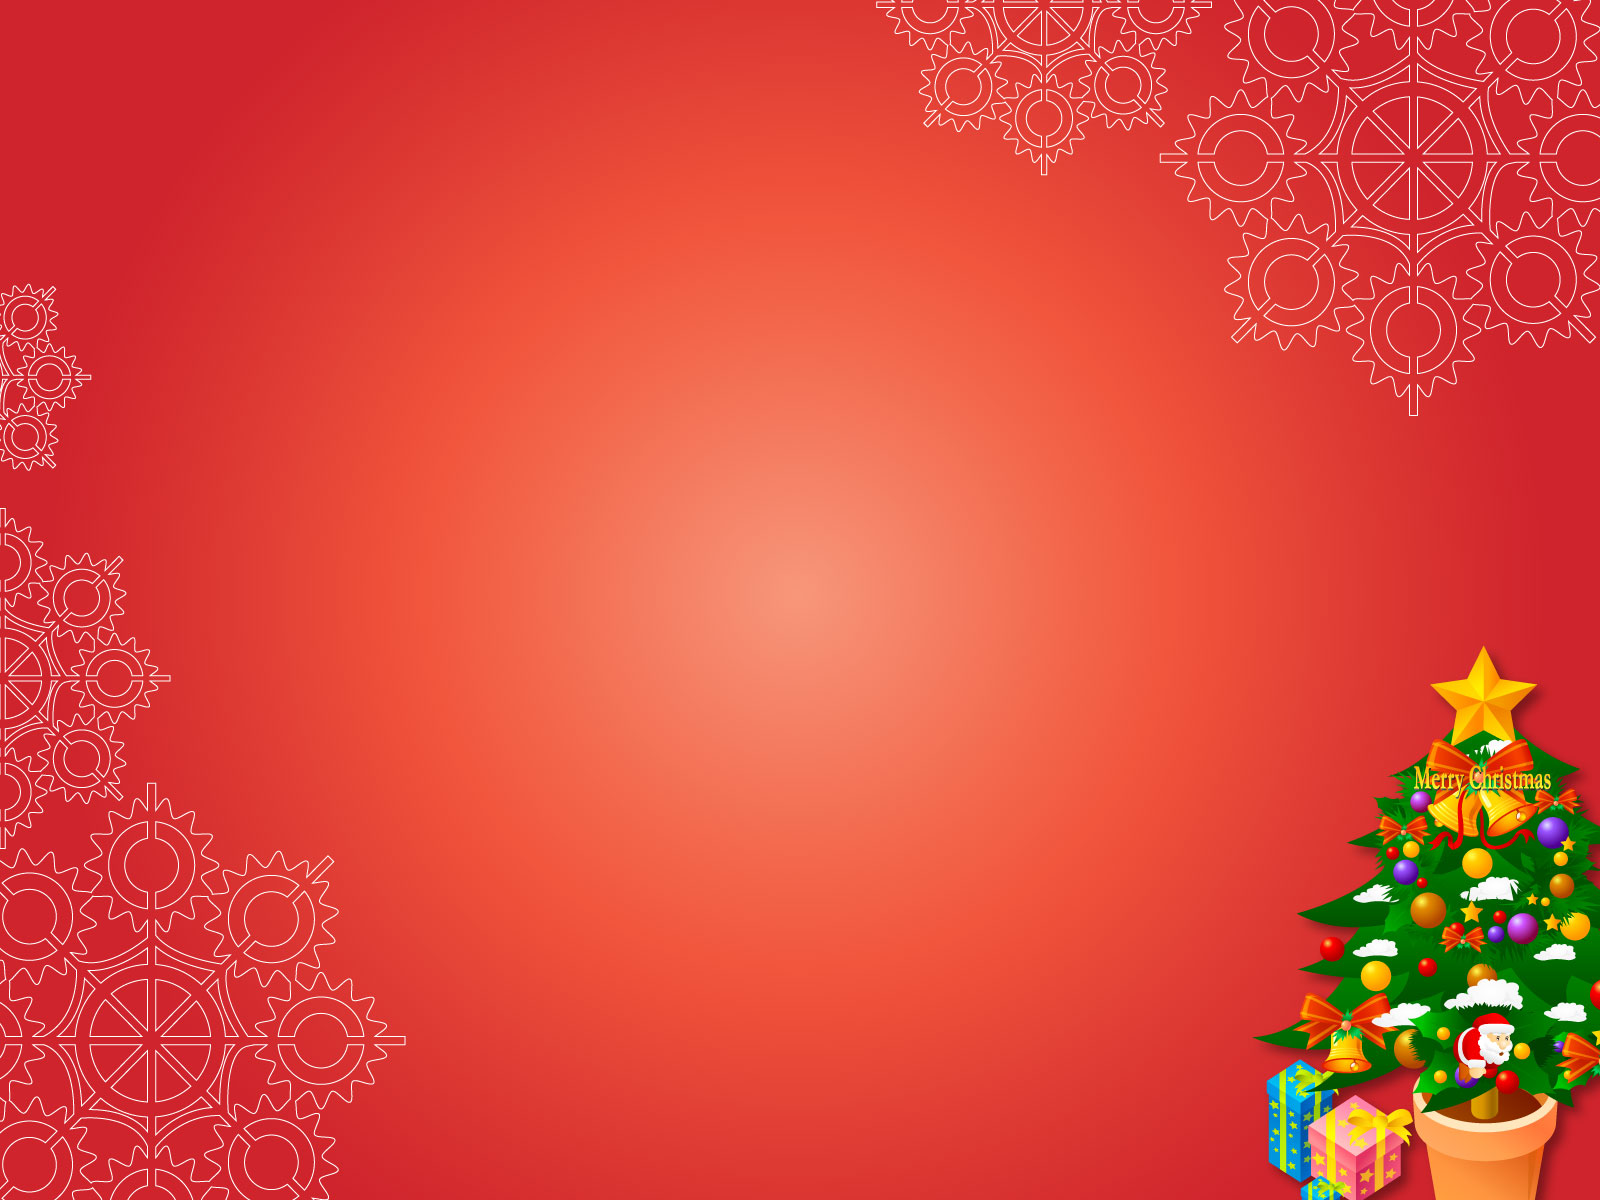 Download HD Christmas amp New Year 2017 Bible Verse 1600x1200